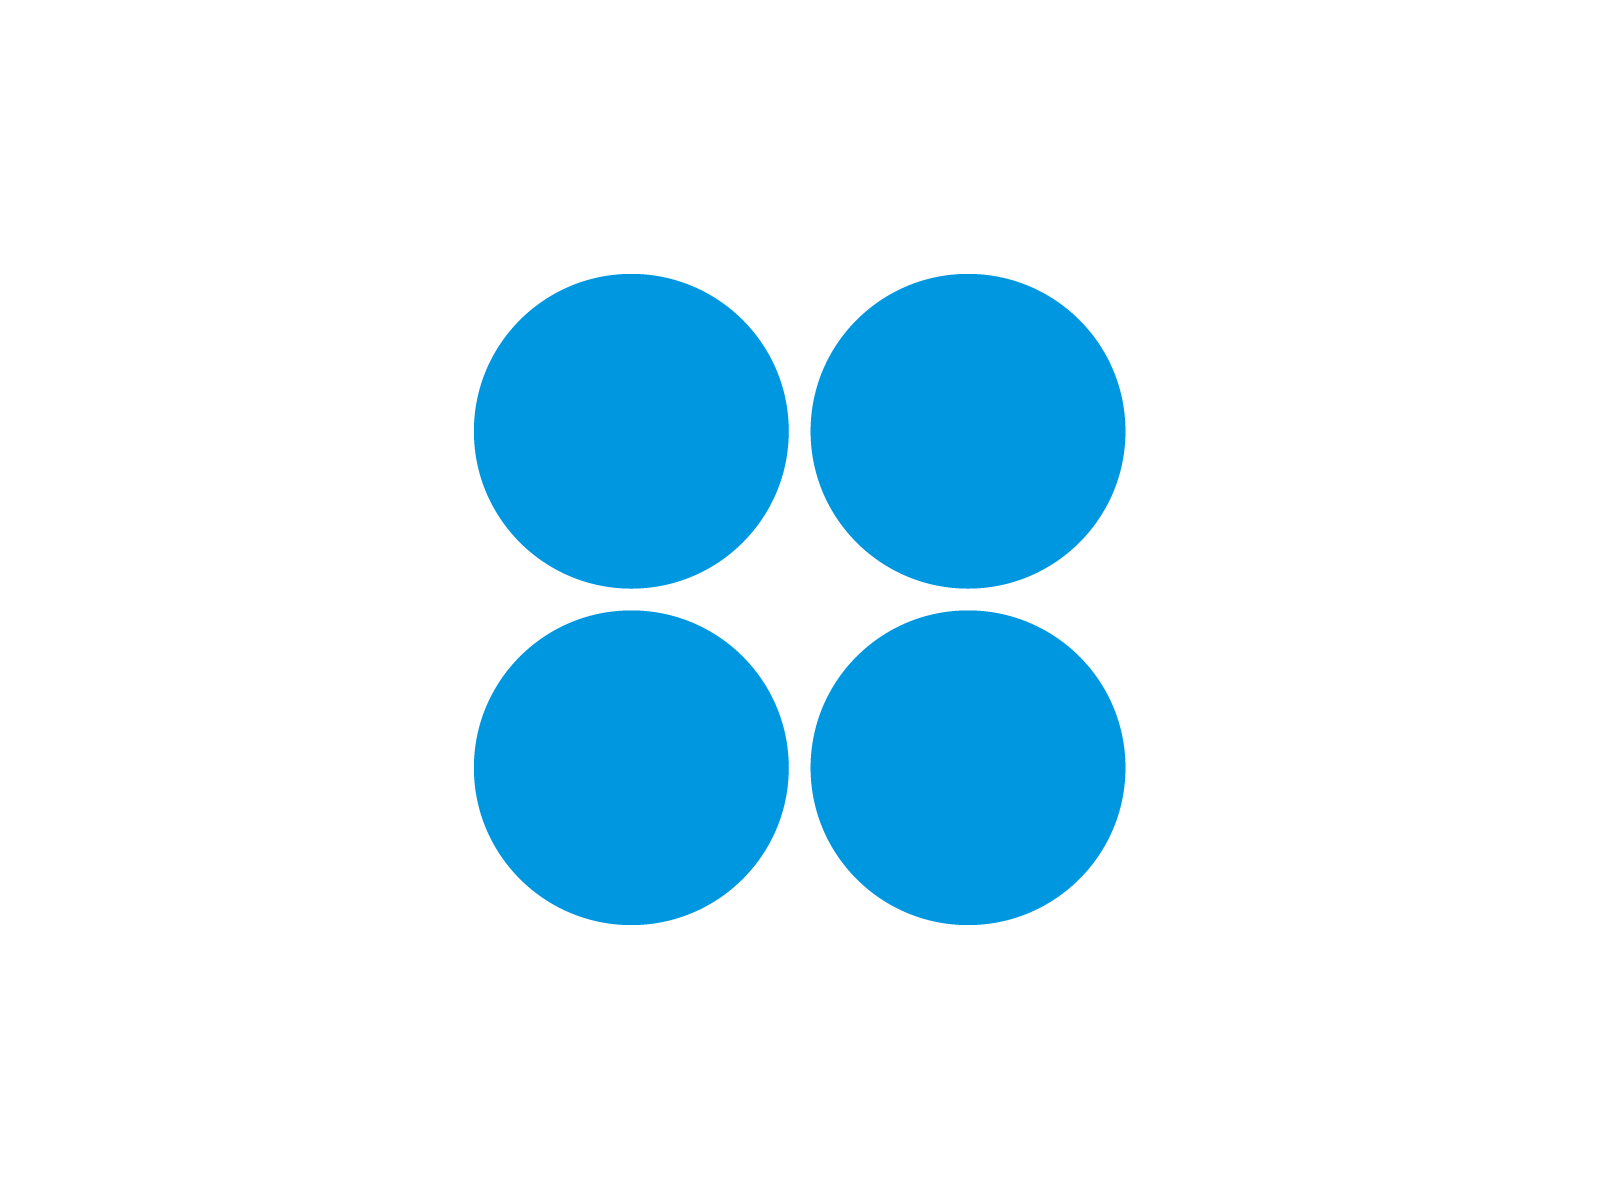 4 Blue Circles Logo - Four Squares In A Circle With A Logo Png Images